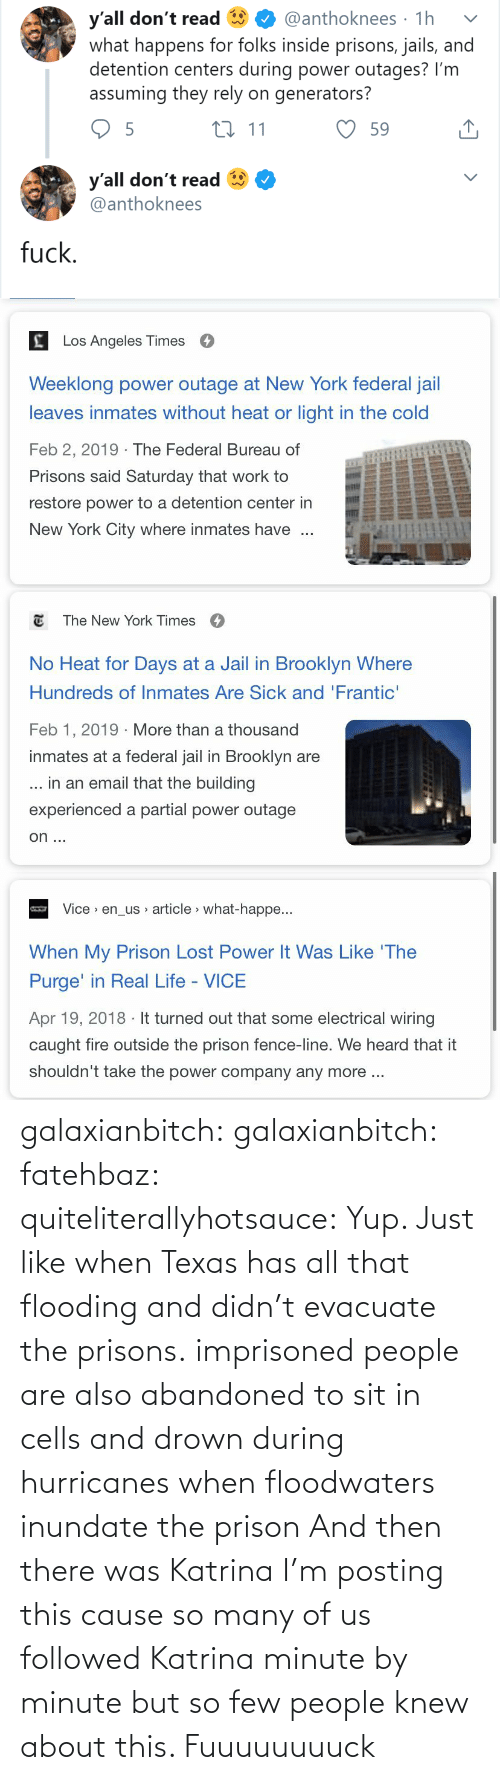 Prison: y'all don't read  what happens for folks inside prisons, jails, and  detention centers during power outages? I'm  assuming they rely on generators?  @anthoknees · 1h  27 11  59  y'all don't read  @anthoknees  fuck.   Los Angeles Times  Weeklong power outage at New York federal jail  leaves inmates without heat or light in the cold  Feb 2, 2019 · The Federal Bureau of  Prisons said Saturday that work to  restore power to a detention center in  New York City where inmates have   E The New York Times  O  No Heat for Days at a Jail in Brooklyn Where  Hundreds of Inmates Are Sick and 'Frantic'  Feb 1, 2019 · More than a thousand  inmates at a federal jail in Brooklyn are  ... in an email that the building  experienced a partial power outage  on ...   Vice > en_us article > what-happe...  When My Prison Lost Power It Was Like 'The  Purge' in Real Life - VICE  Apr 19, 2018 · It turned out that some electrical wiring  caught fire outside the prison fence-line. We heard that it  shouldn't take the power company any more .. galaxianbitch: galaxianbitch:   fatehbaz:  quiteliterallyhotsauce:   Yup. Just like when Texas has all that flooding and didn't evacuate the prisons.   imprisoned people are also abandoned to sit in cells and drown during hurricanes when floodwaters inundate the prison   And then there was Katrina        I'm posting this cause so many of us followed Katrina minute by minute but so few people knew about this.    Fuuuuuuuuck